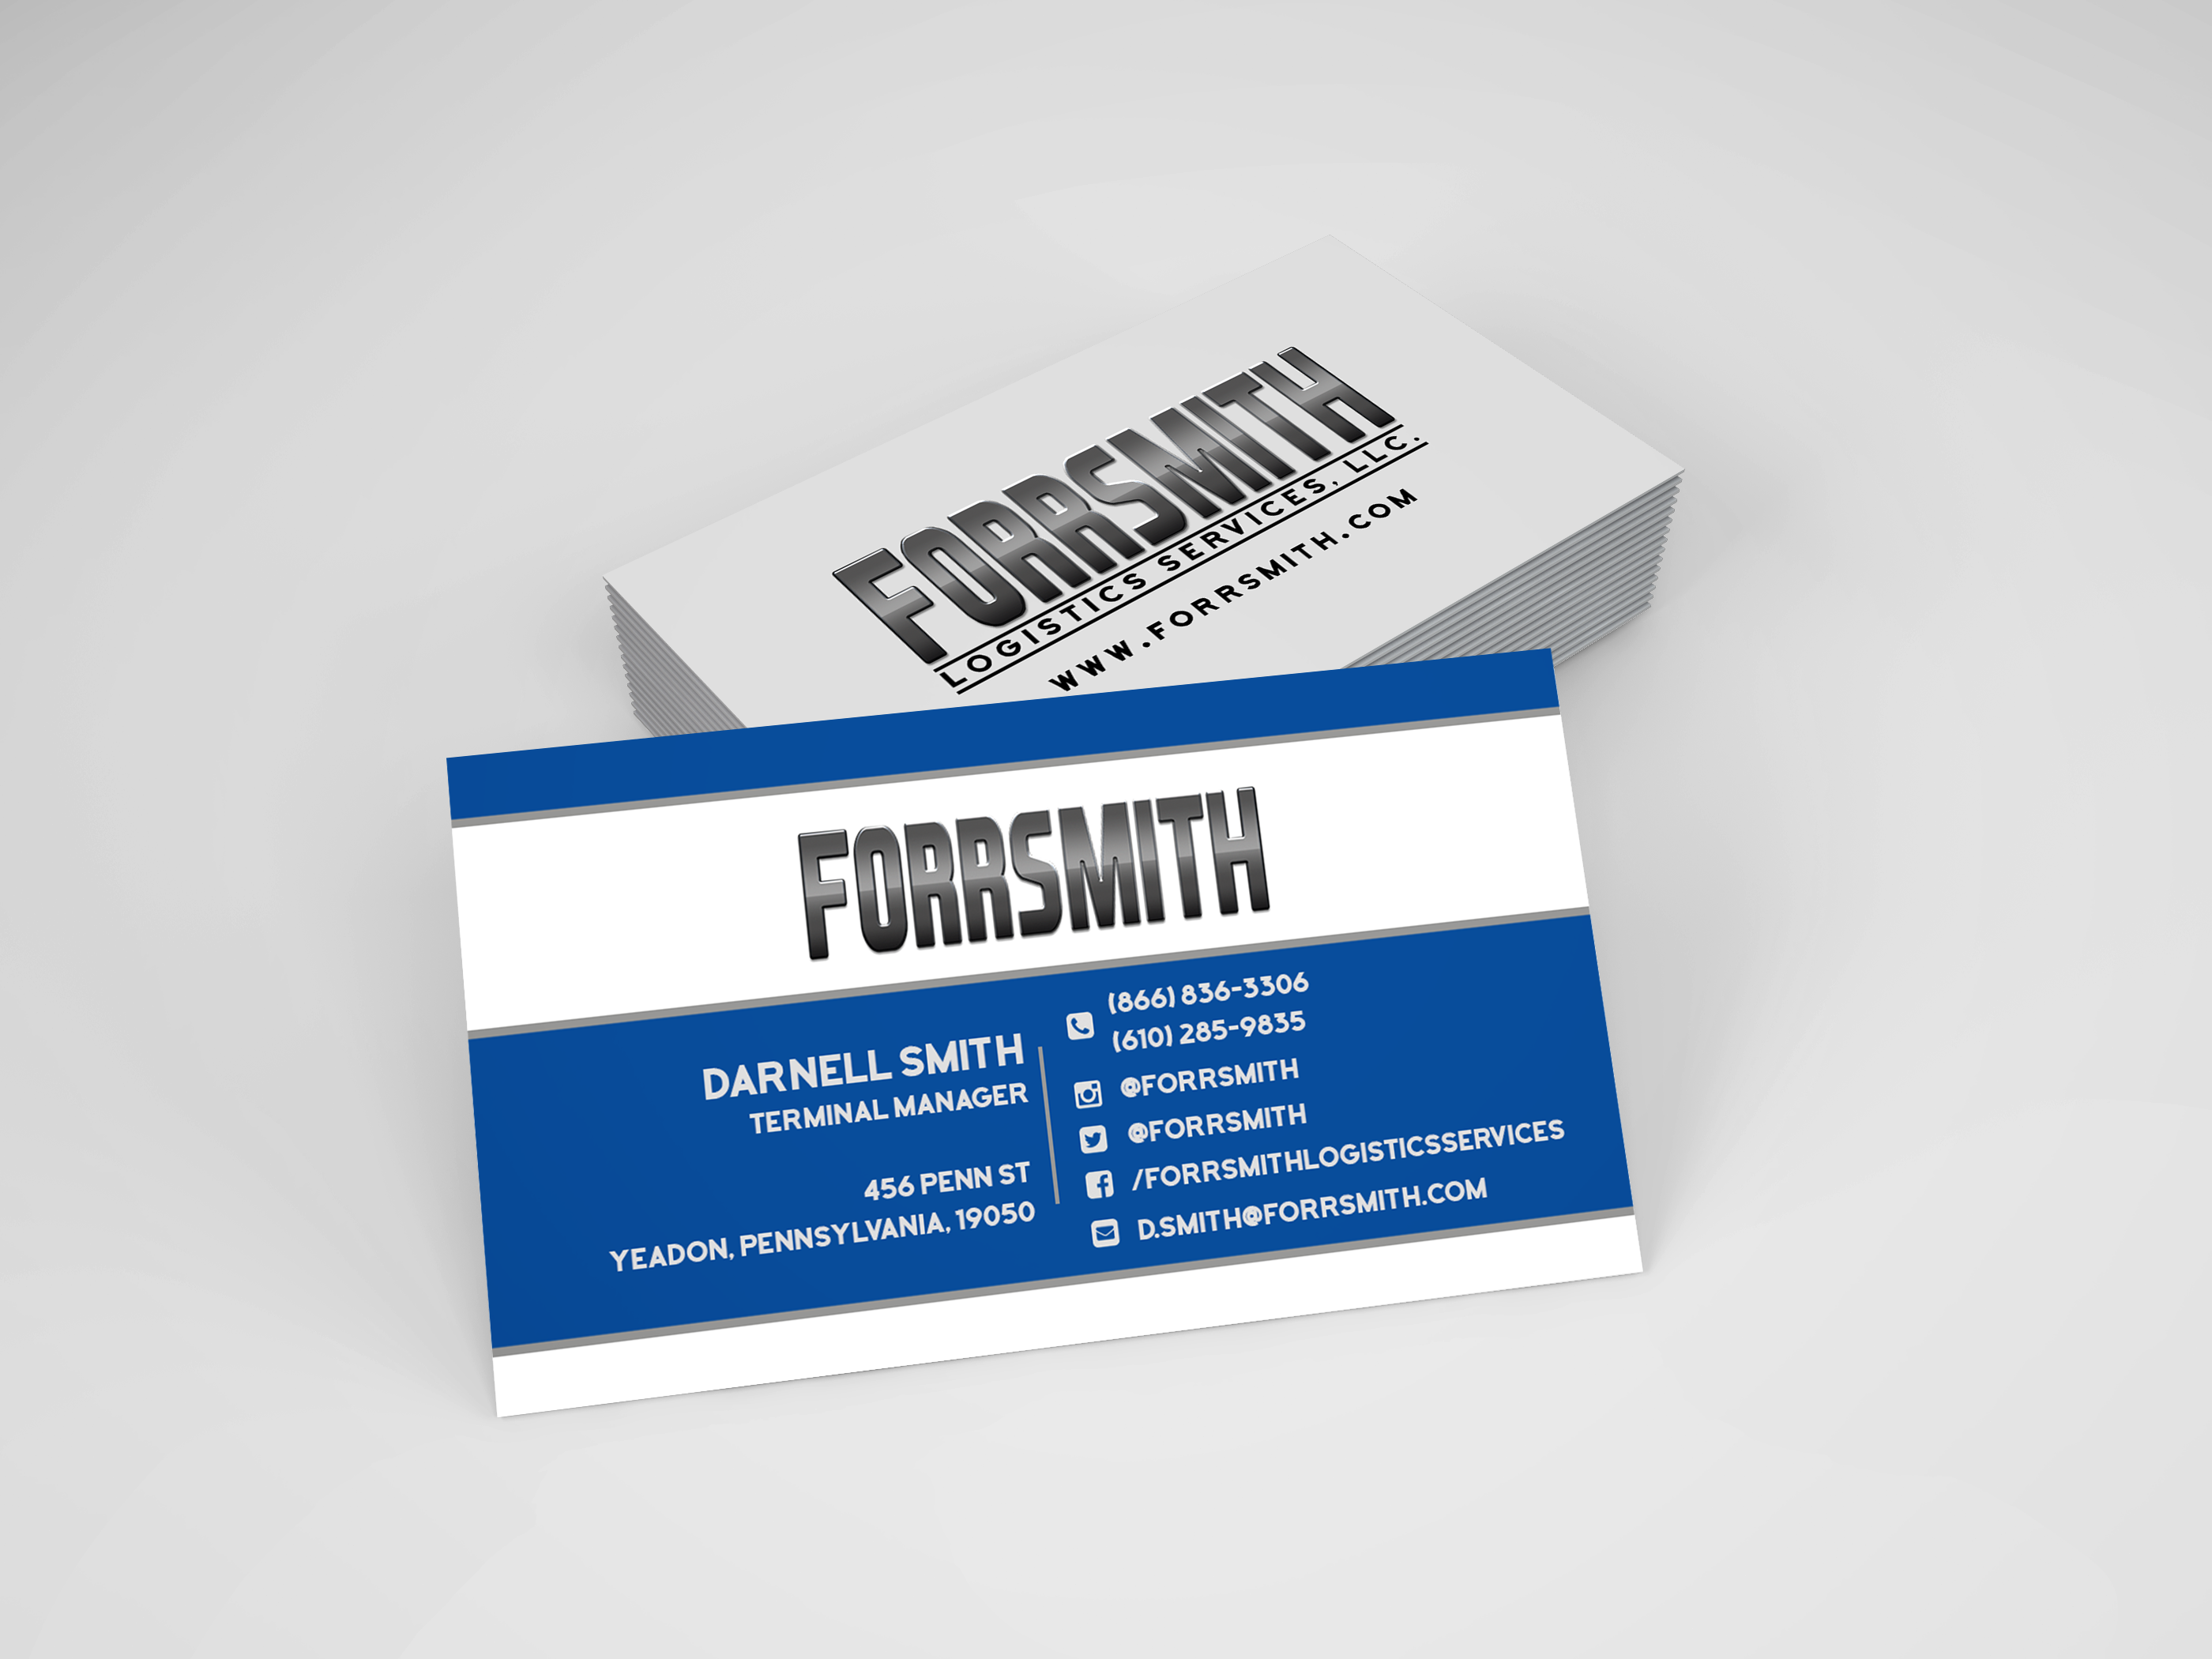 5 Rules to Creating a Totally Awesome Business Card